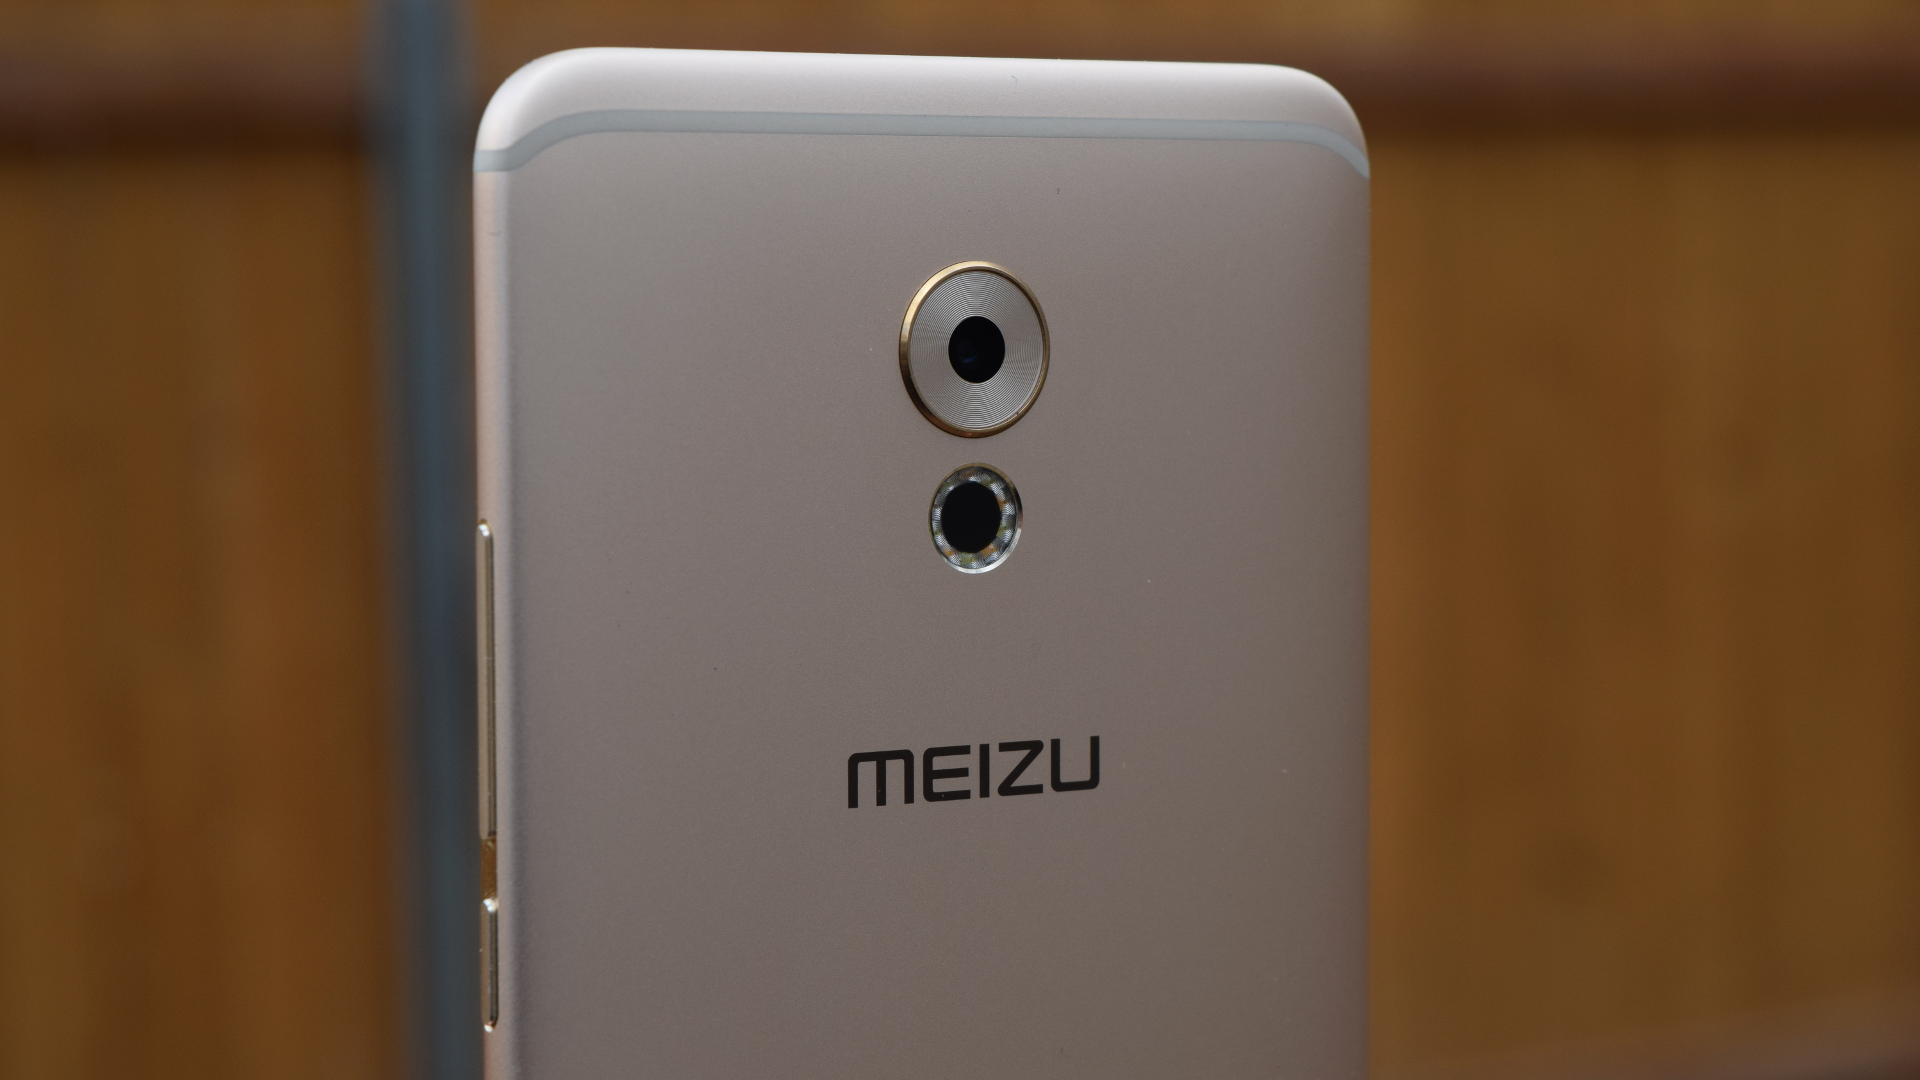 Meizu Pro 6 Plus review: Another solid phone with some